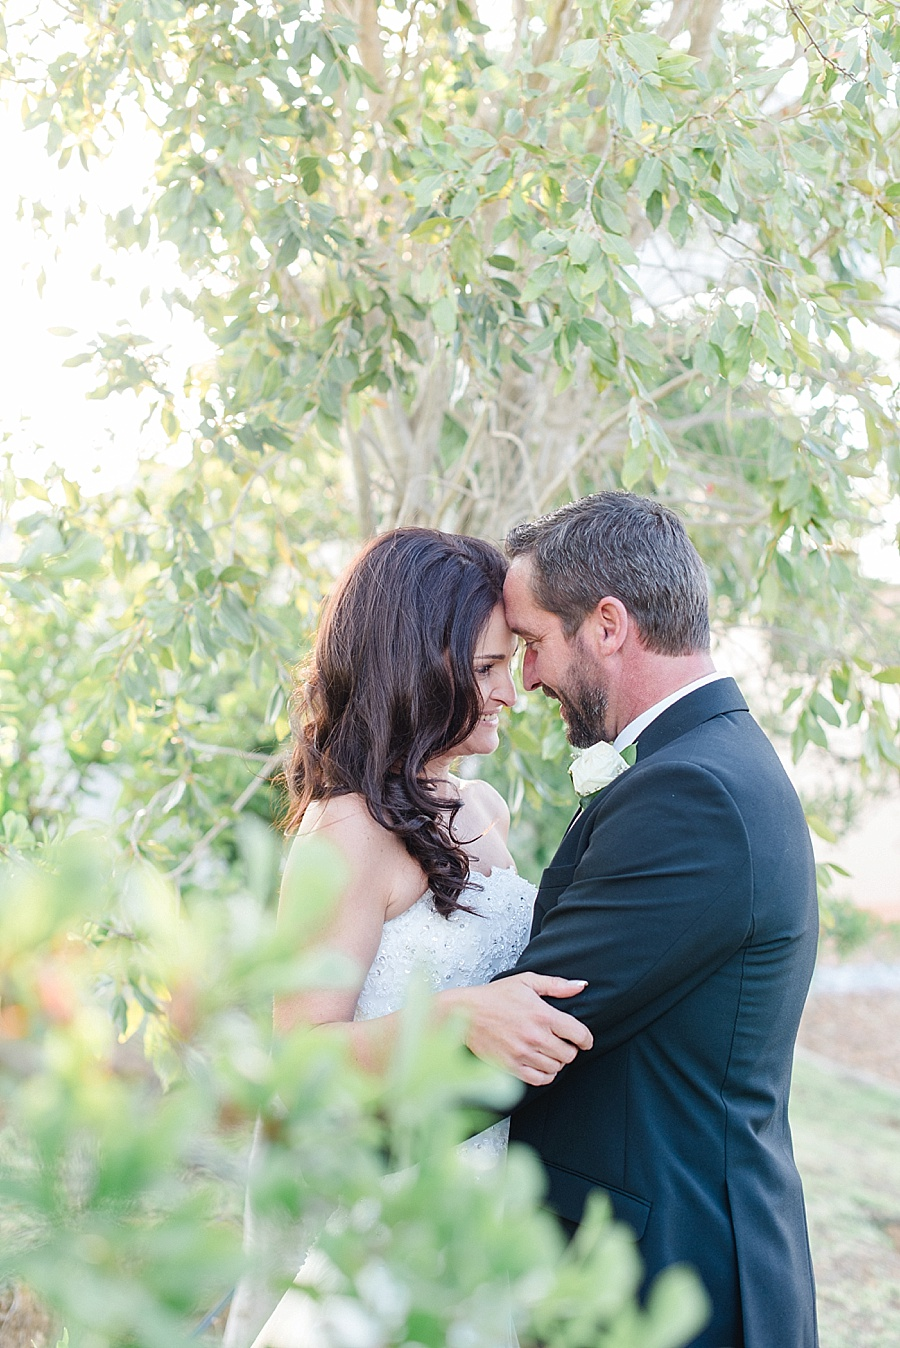 Darren Bester - Cape Town Wedding Photographer - Kronenburg - Cindy and Evan_0026.jpg